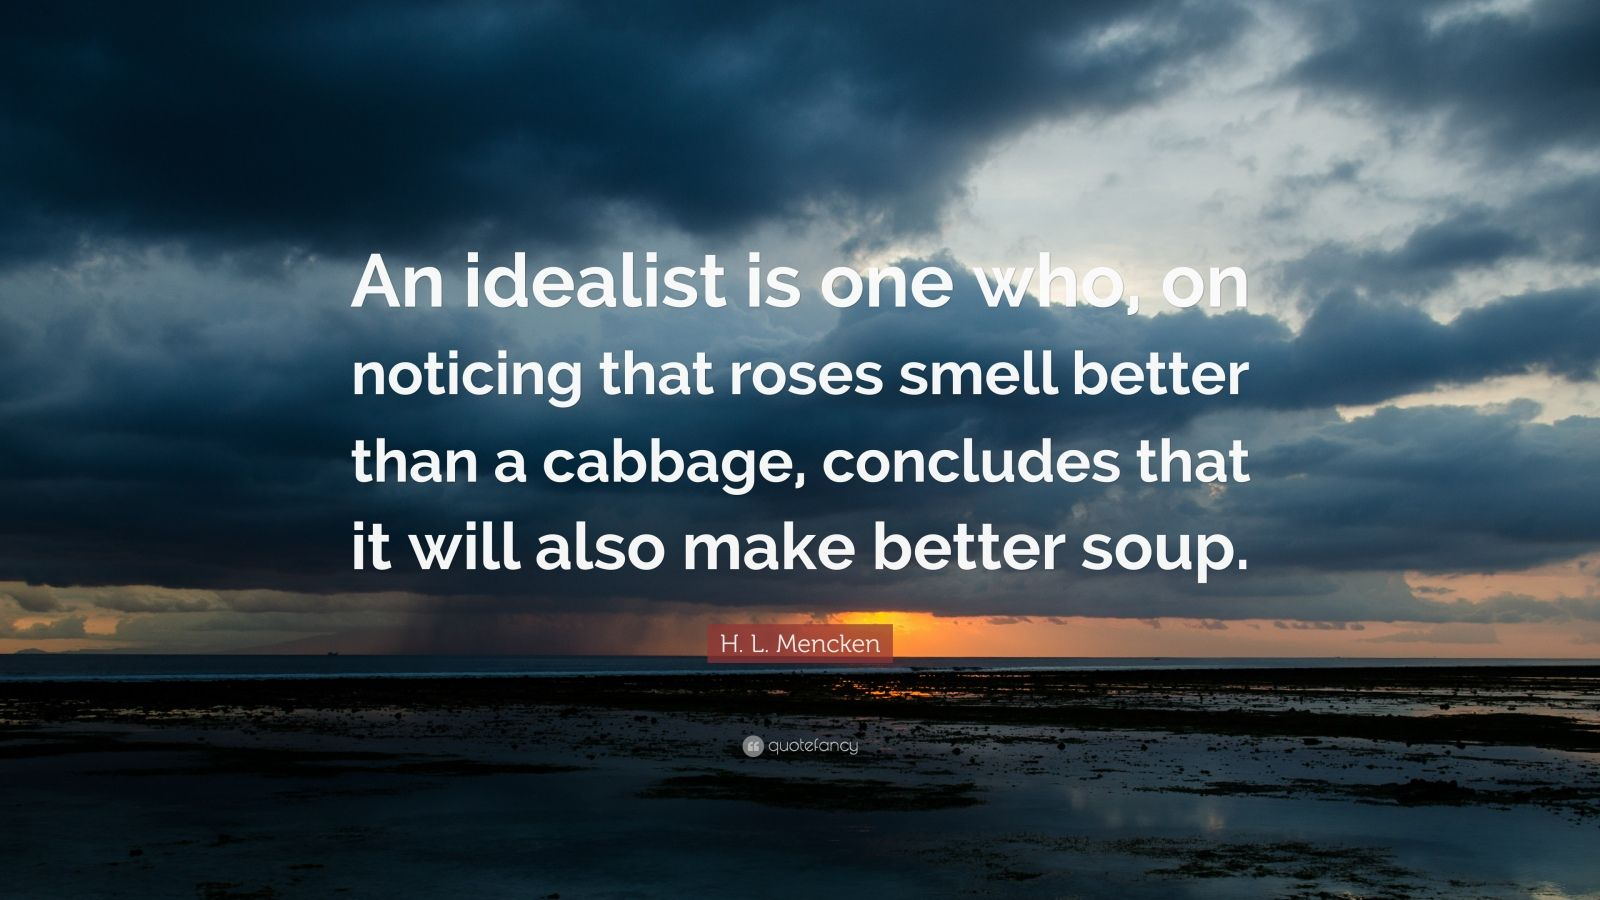 """H. L. Mencken Quote: """"An idealist is one who, on noticing that roses smell better than a cabbage, concludes that it will also make better soup."""""""